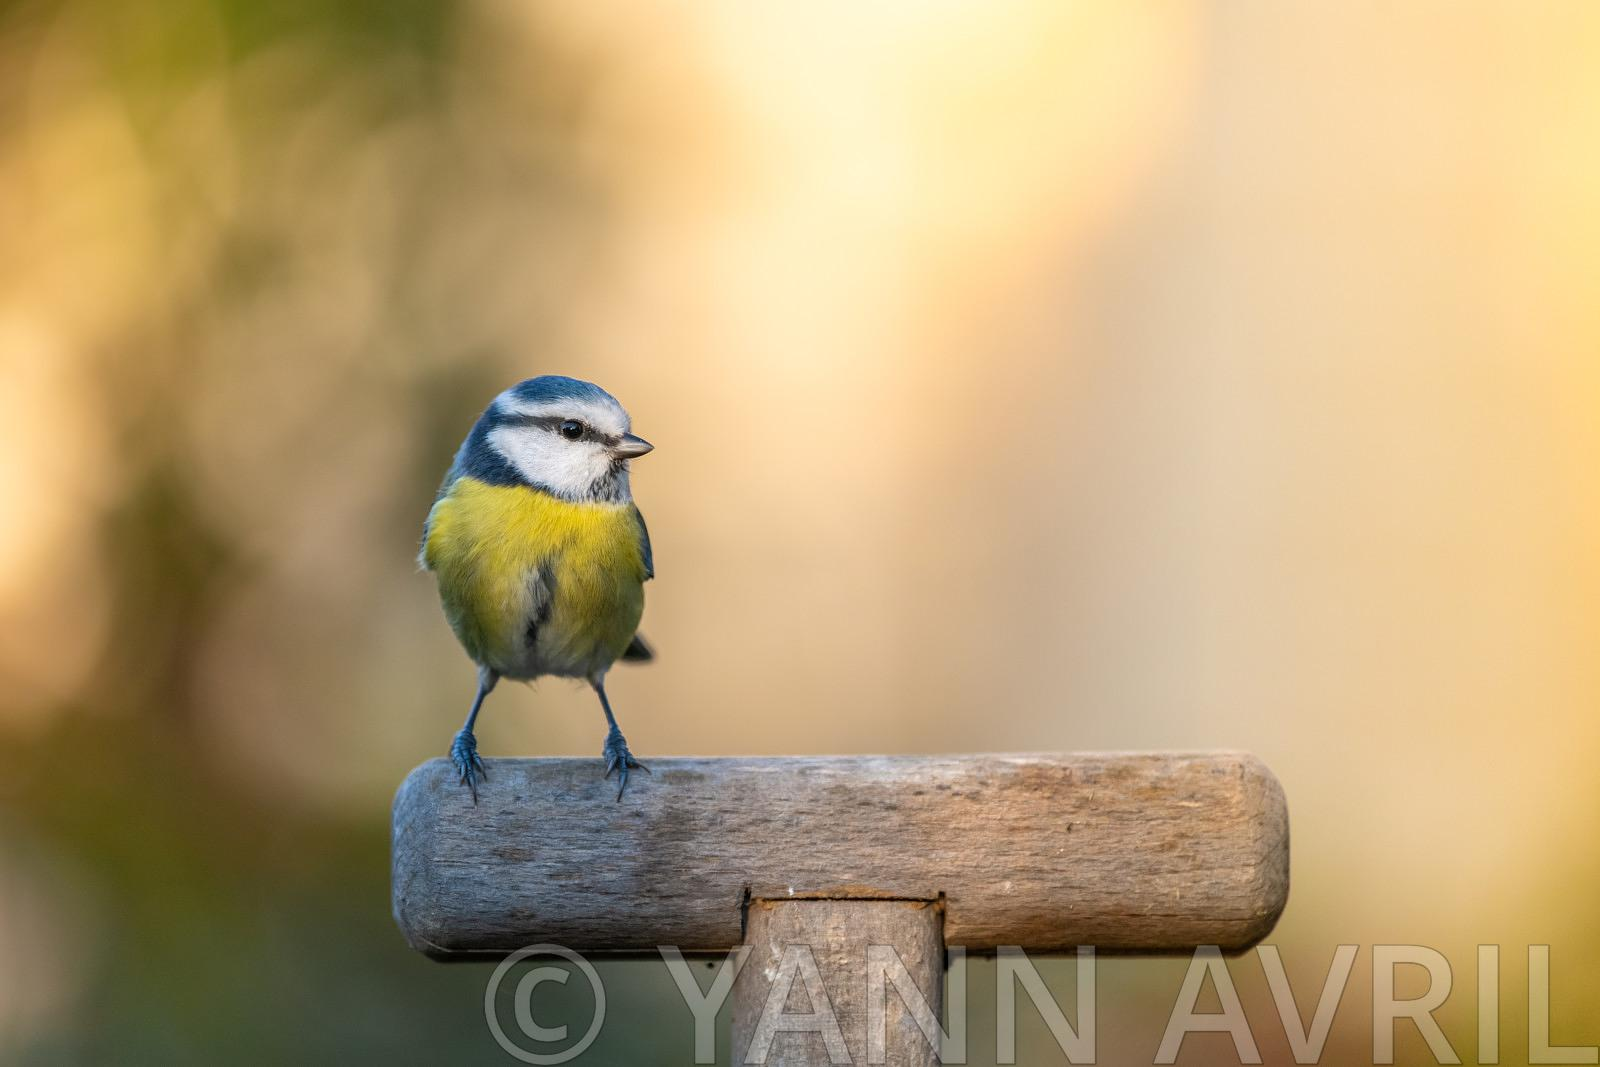 Cyanistes caeruleus-Blue tit on a spade handle